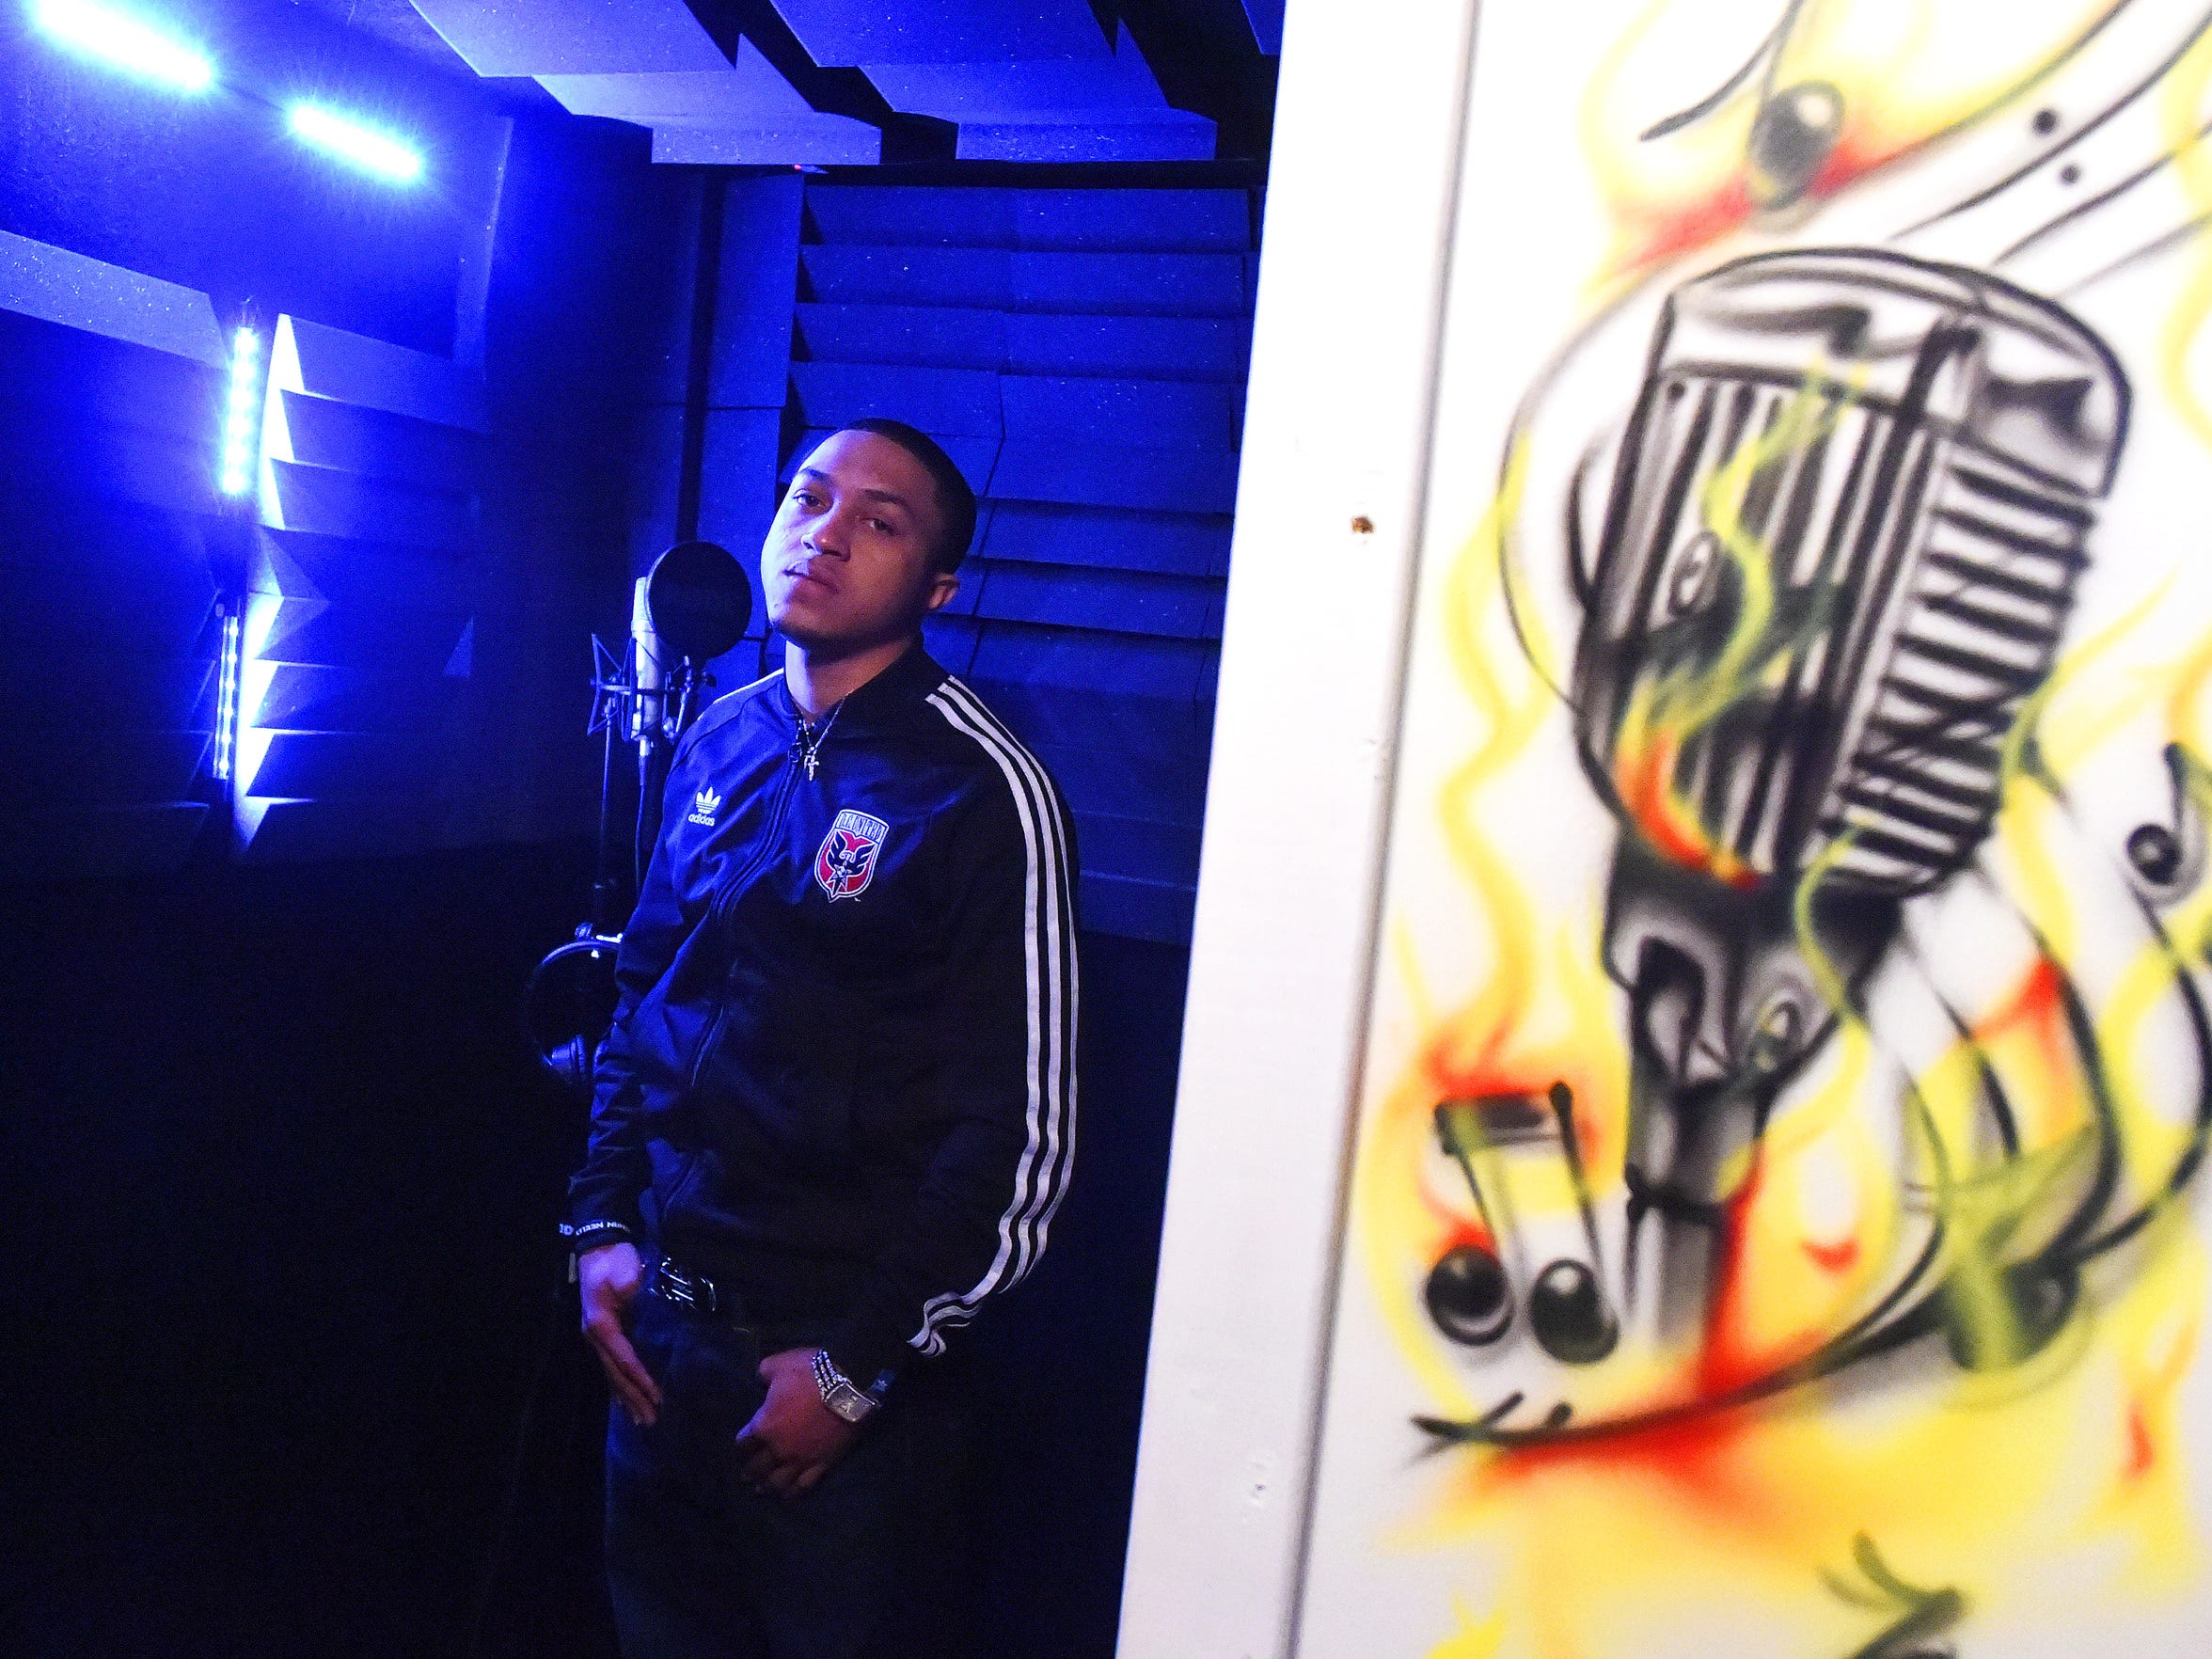 Hip hop musician Rakeem Moats, aka Roc Rizzy, stands inside the recording booth for Cash Cow Entertainment in Staunton on Jan. 14, 2016.